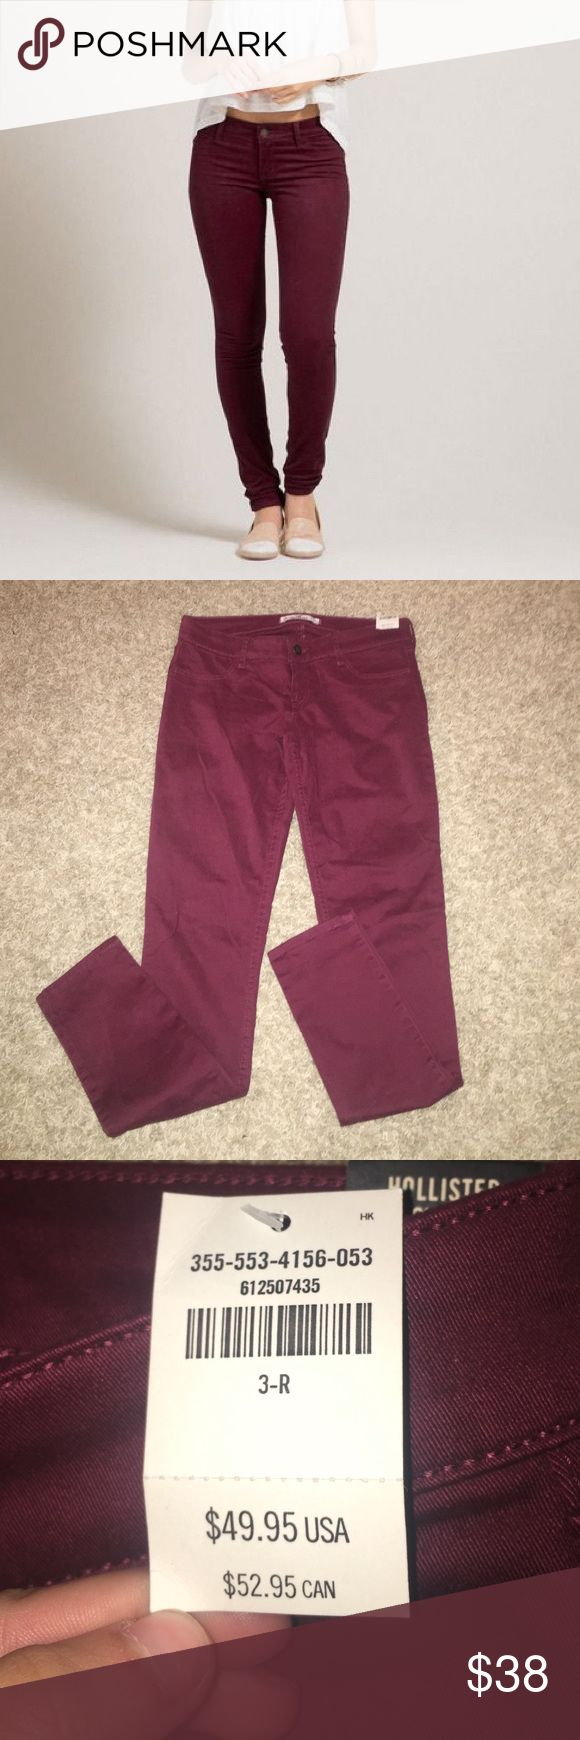 1000  ideas about Maroon Skinny Jeans on Pinterest | Burgundy